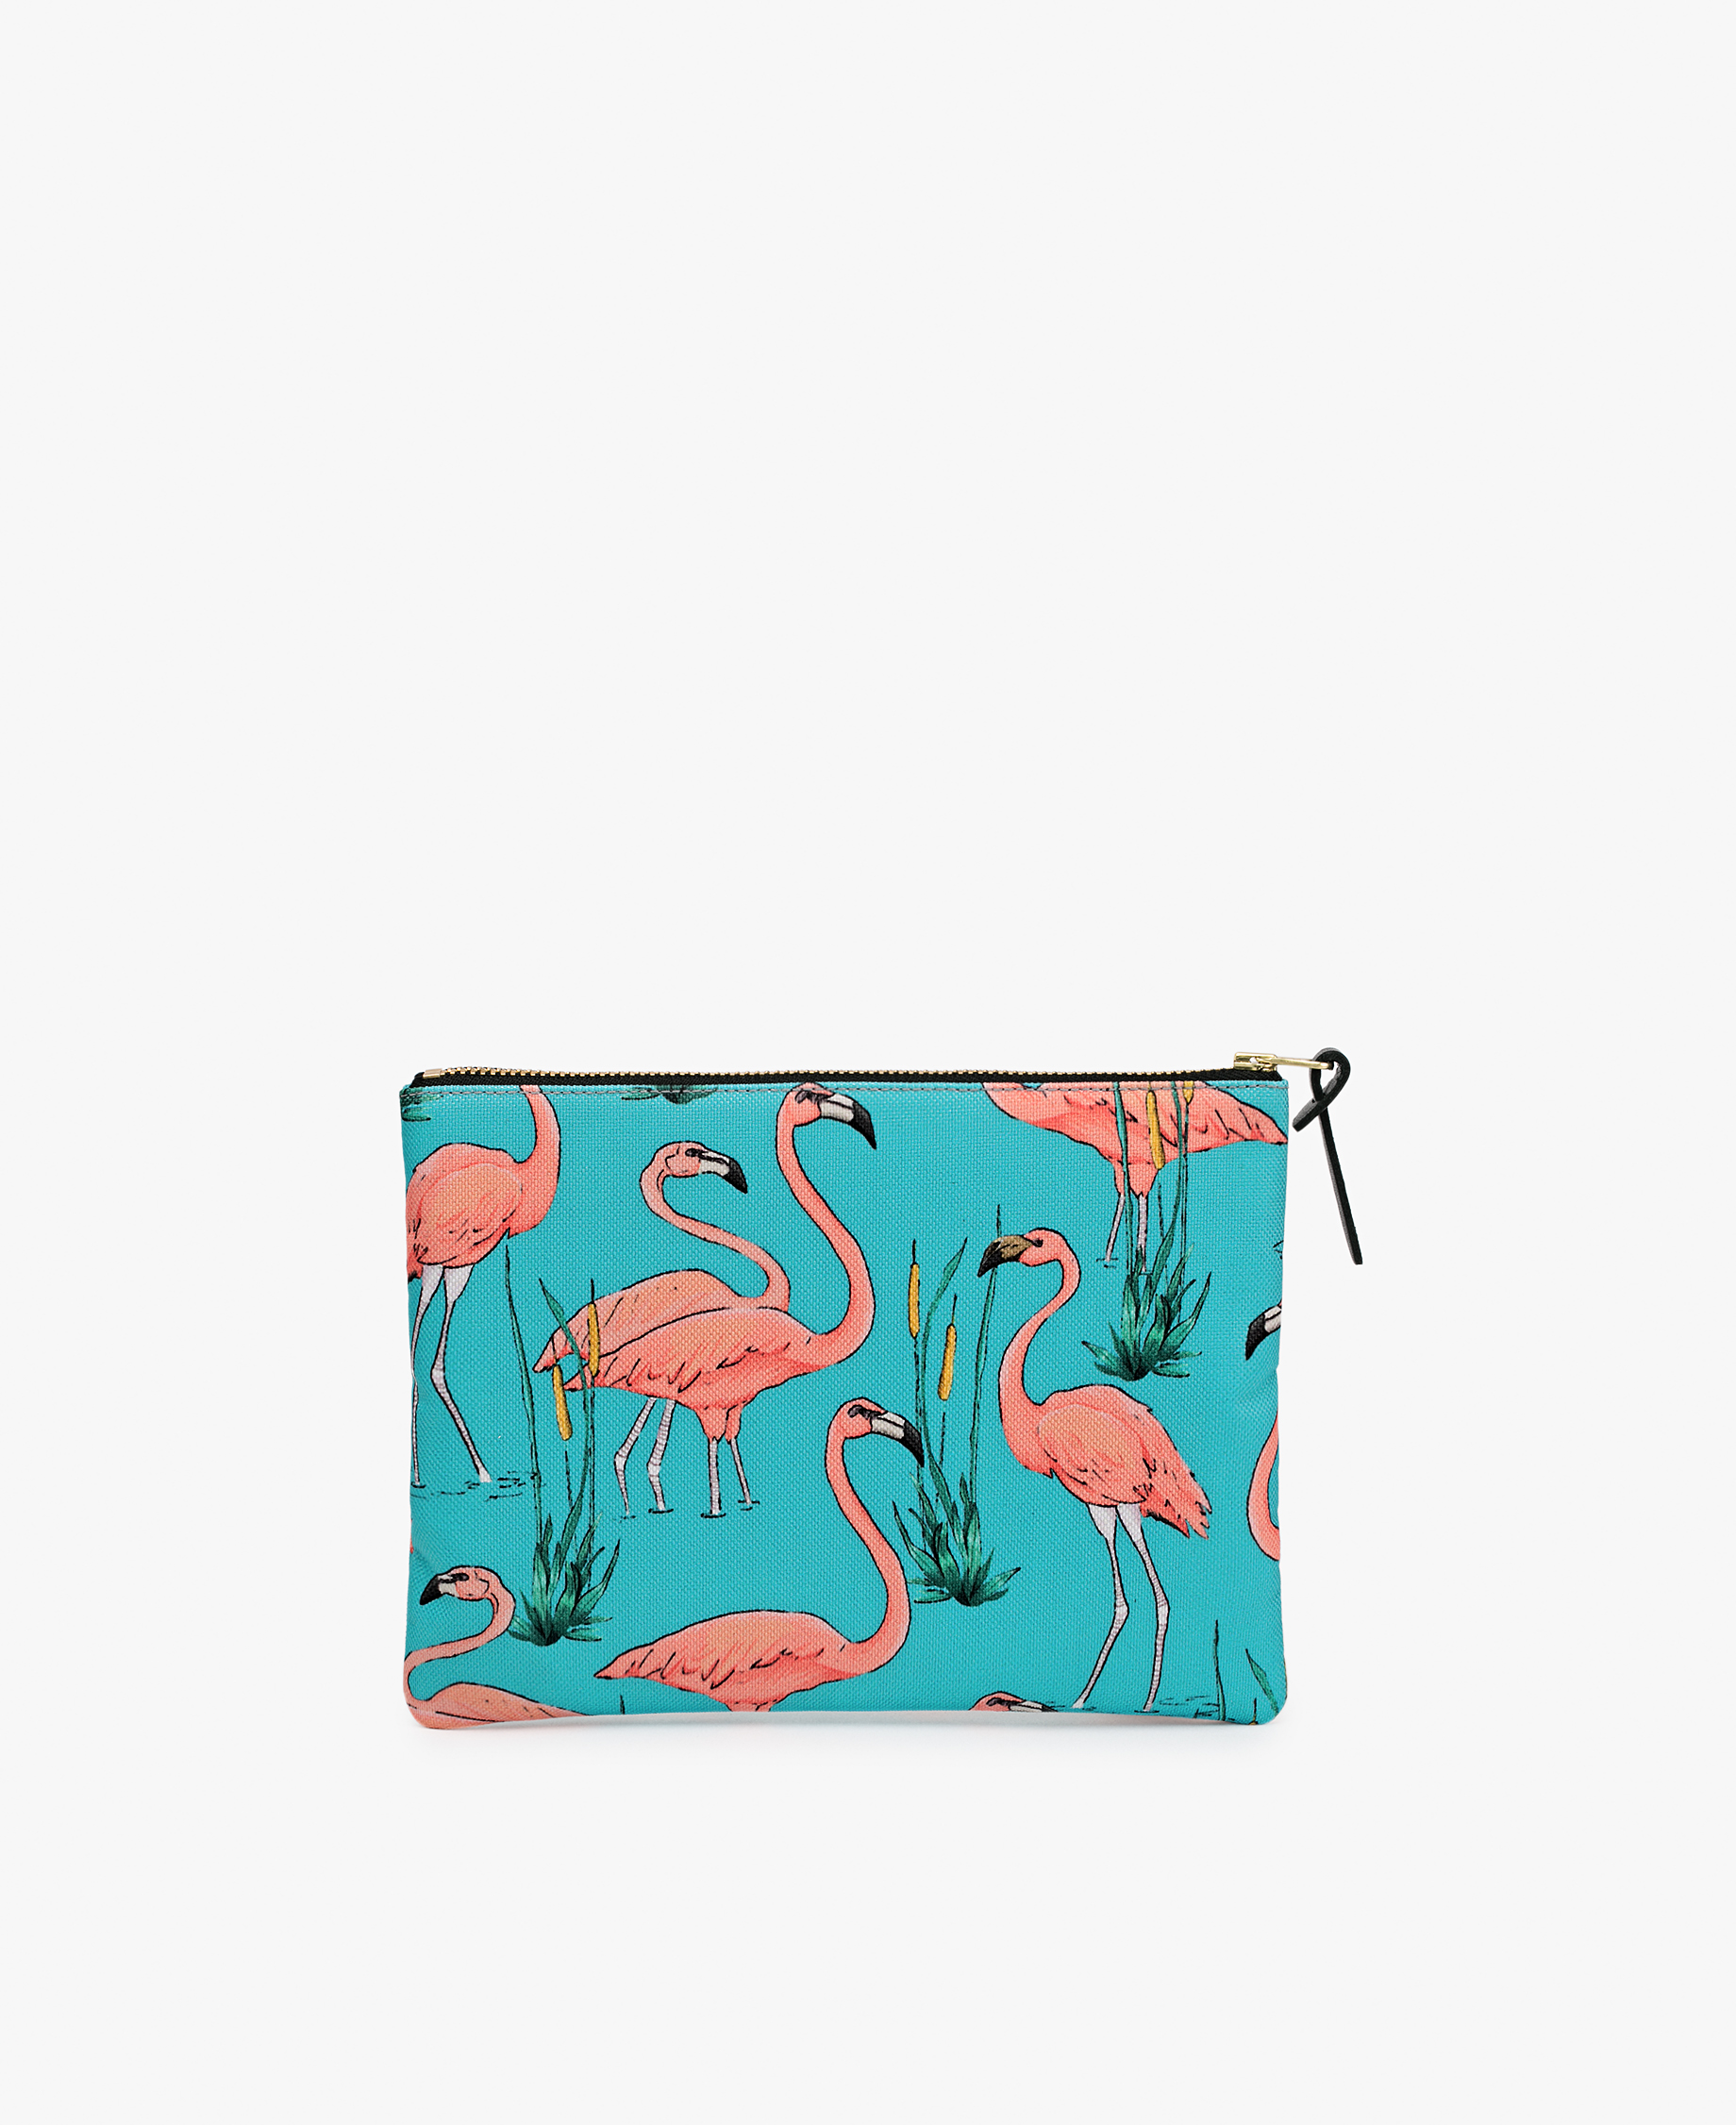 chic pouch